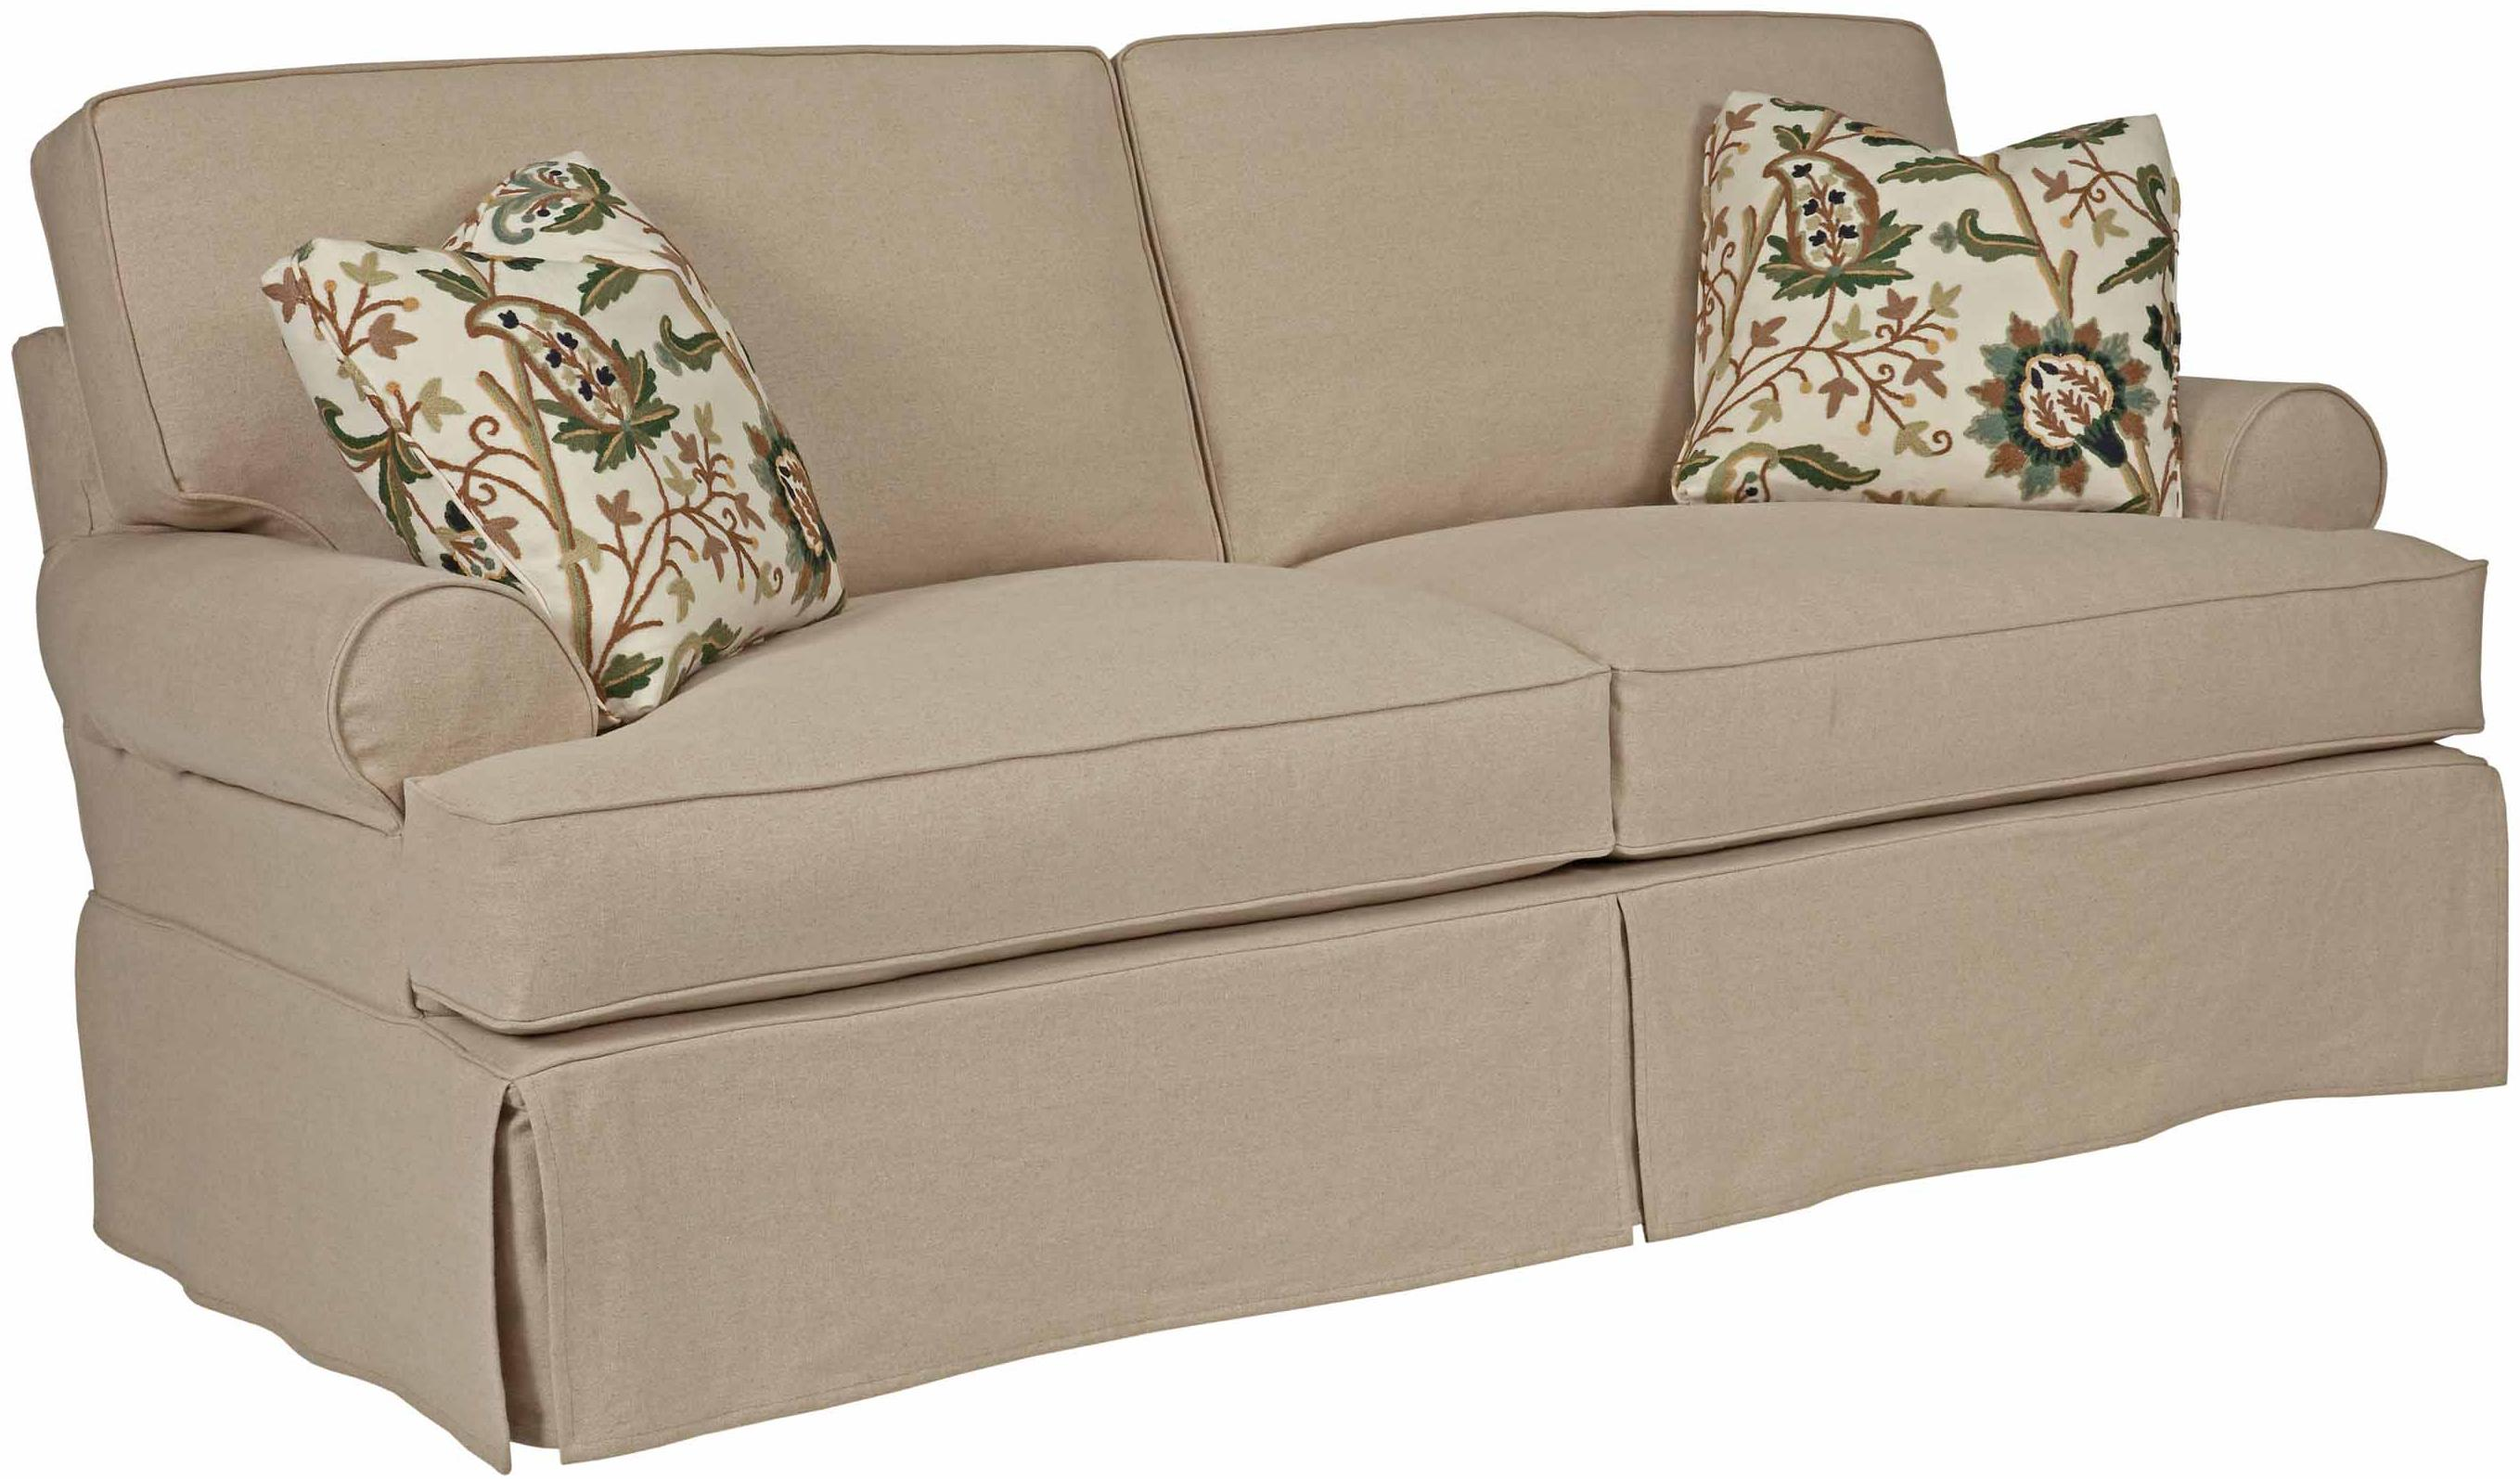 Sofa Slipcovers Slipcover Style Stripe Twill Sofa Slipcover